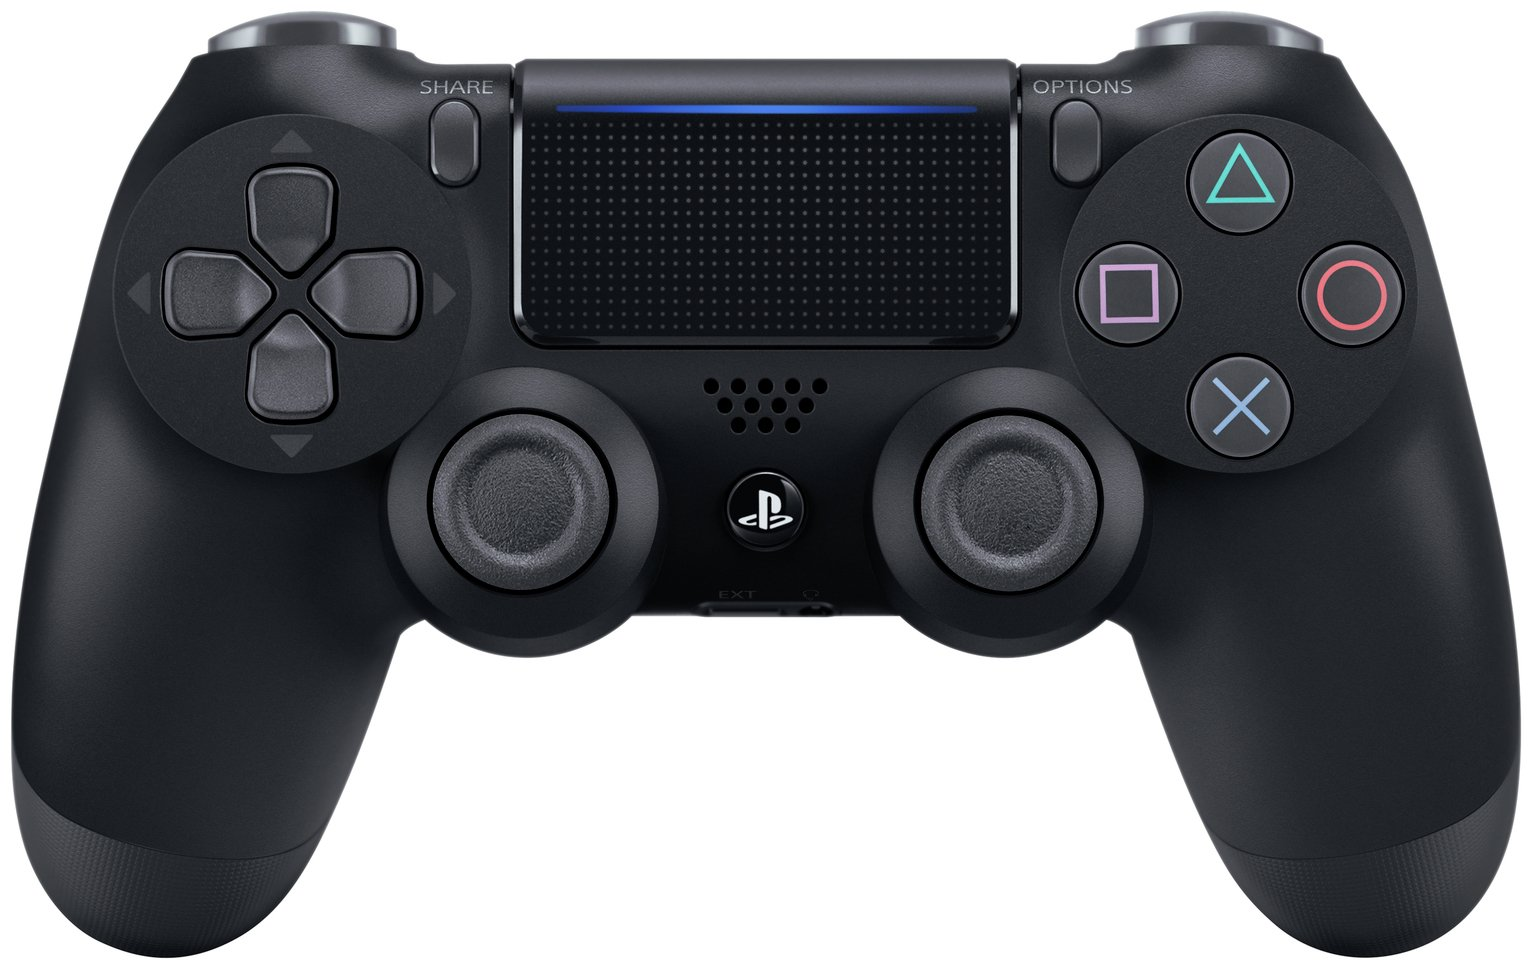 Sony - PS4 - Official DualShock 4 Controller V2 - Black from Playstation